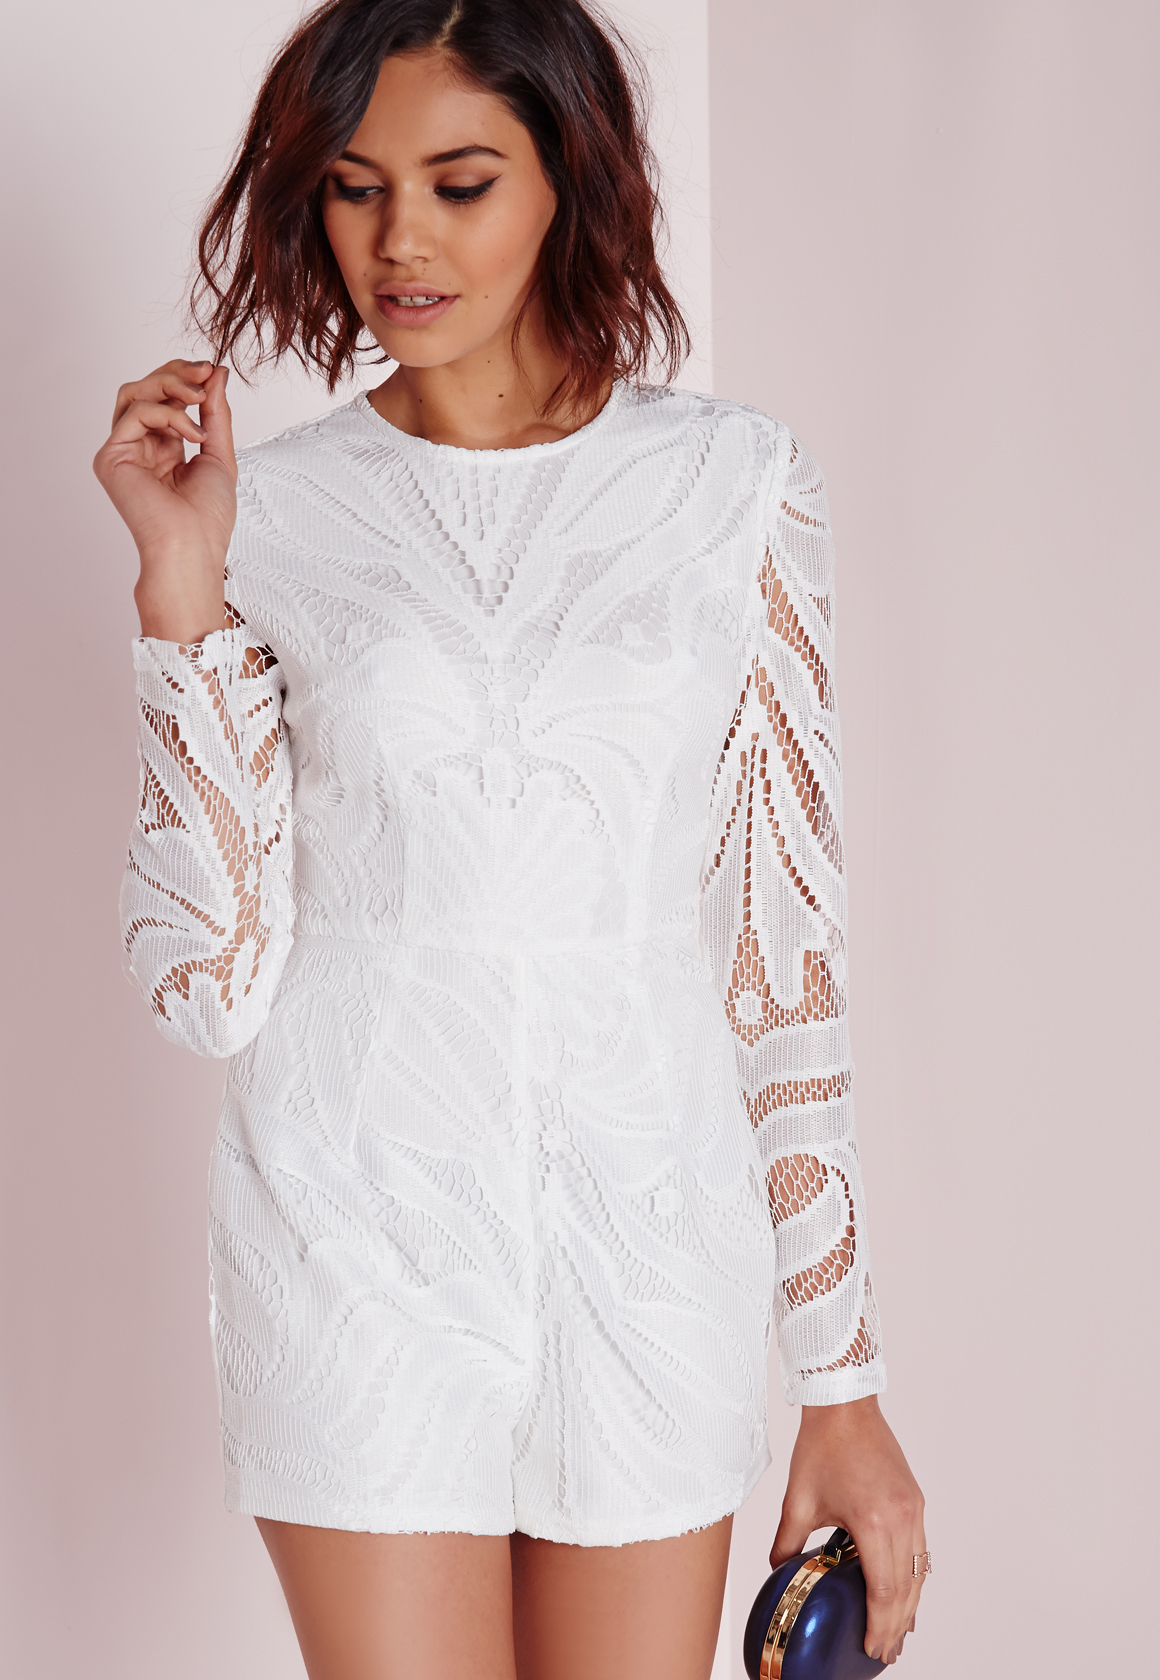 061497119336 Lyst - Missguided Long Sleeve Lace Playsuit White in White